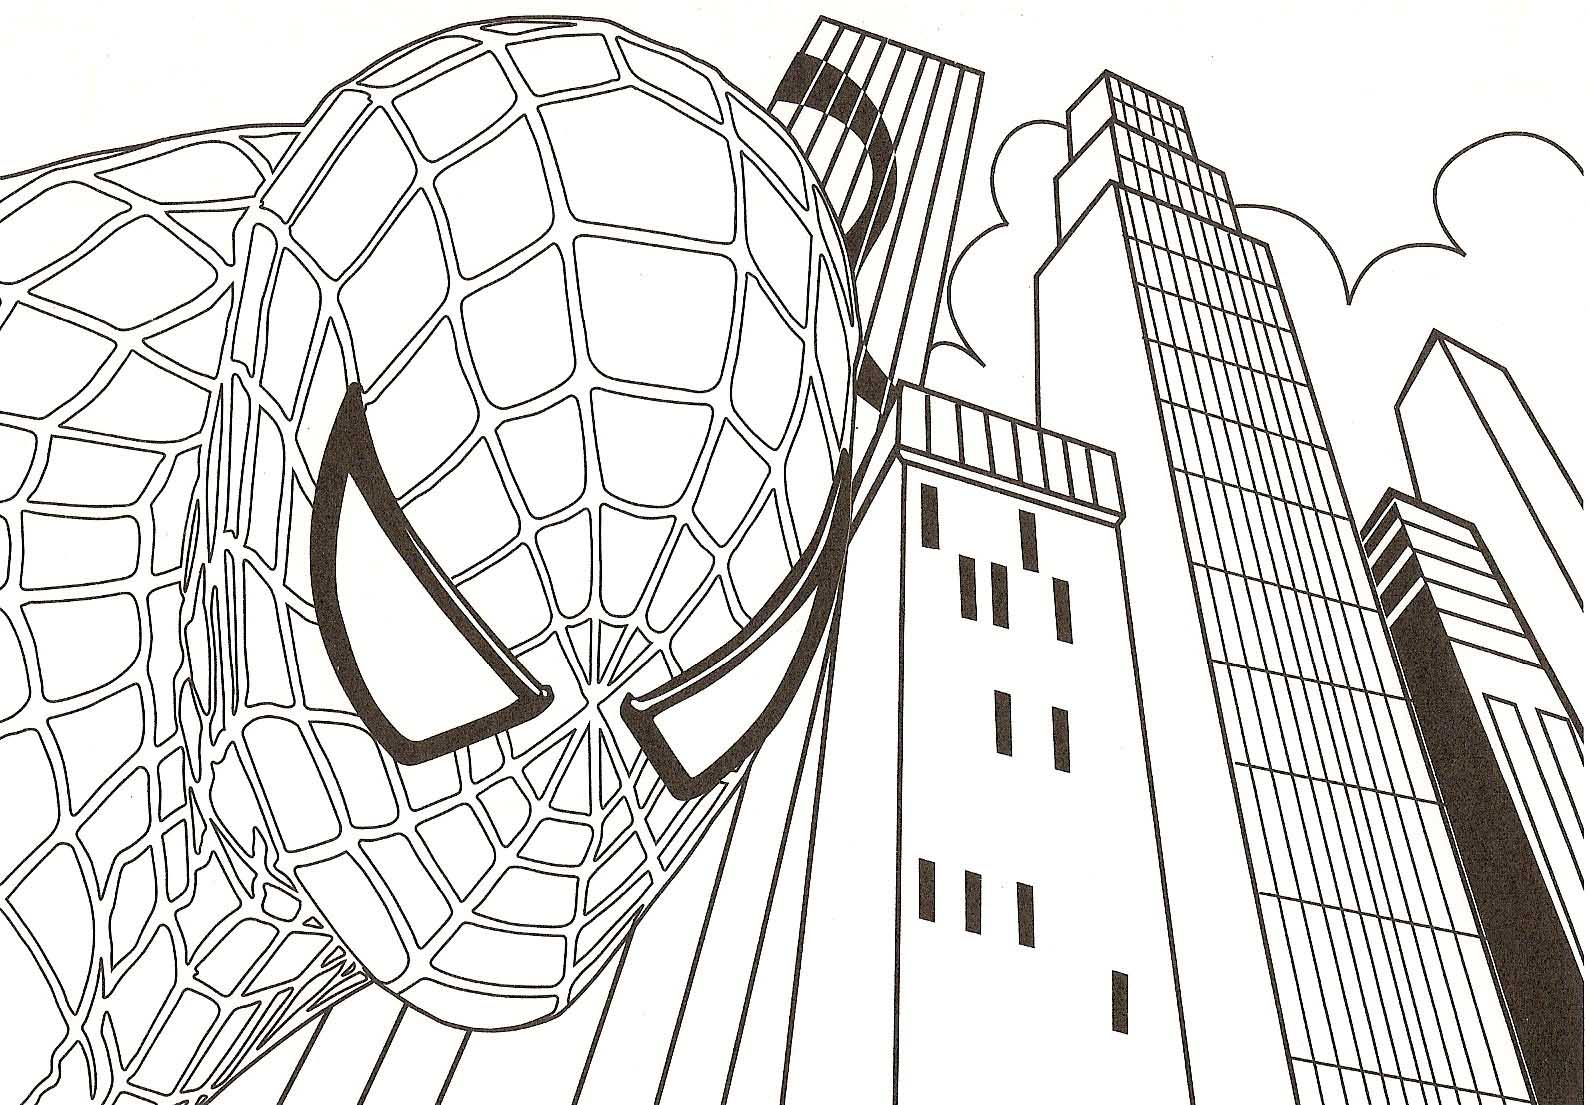 Coloring Pages Spiderman Free Printable Spiderman Coloring Pages For Kids